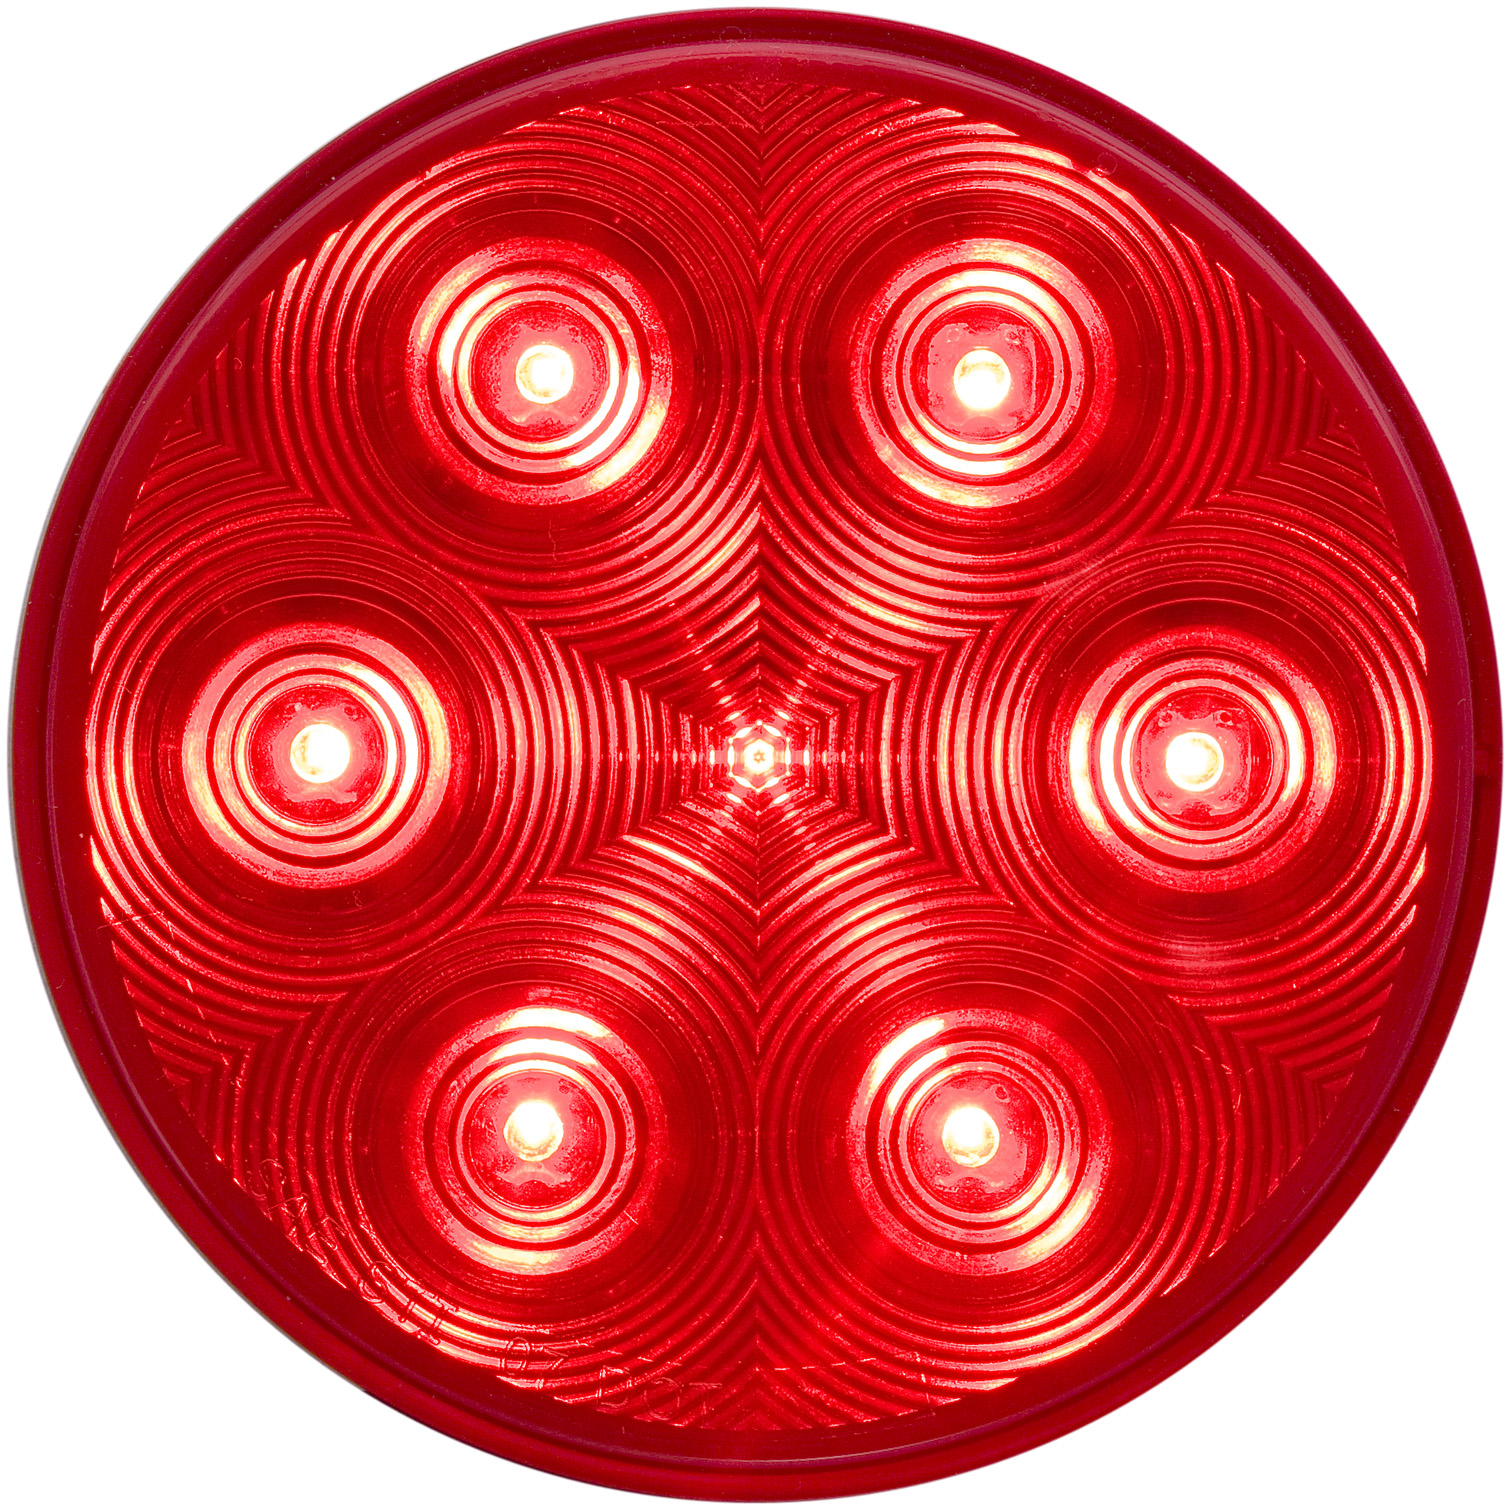 STL13RB_OPTRONICS STL13RB Red Stop Turn Tail Light PL-3 Connection